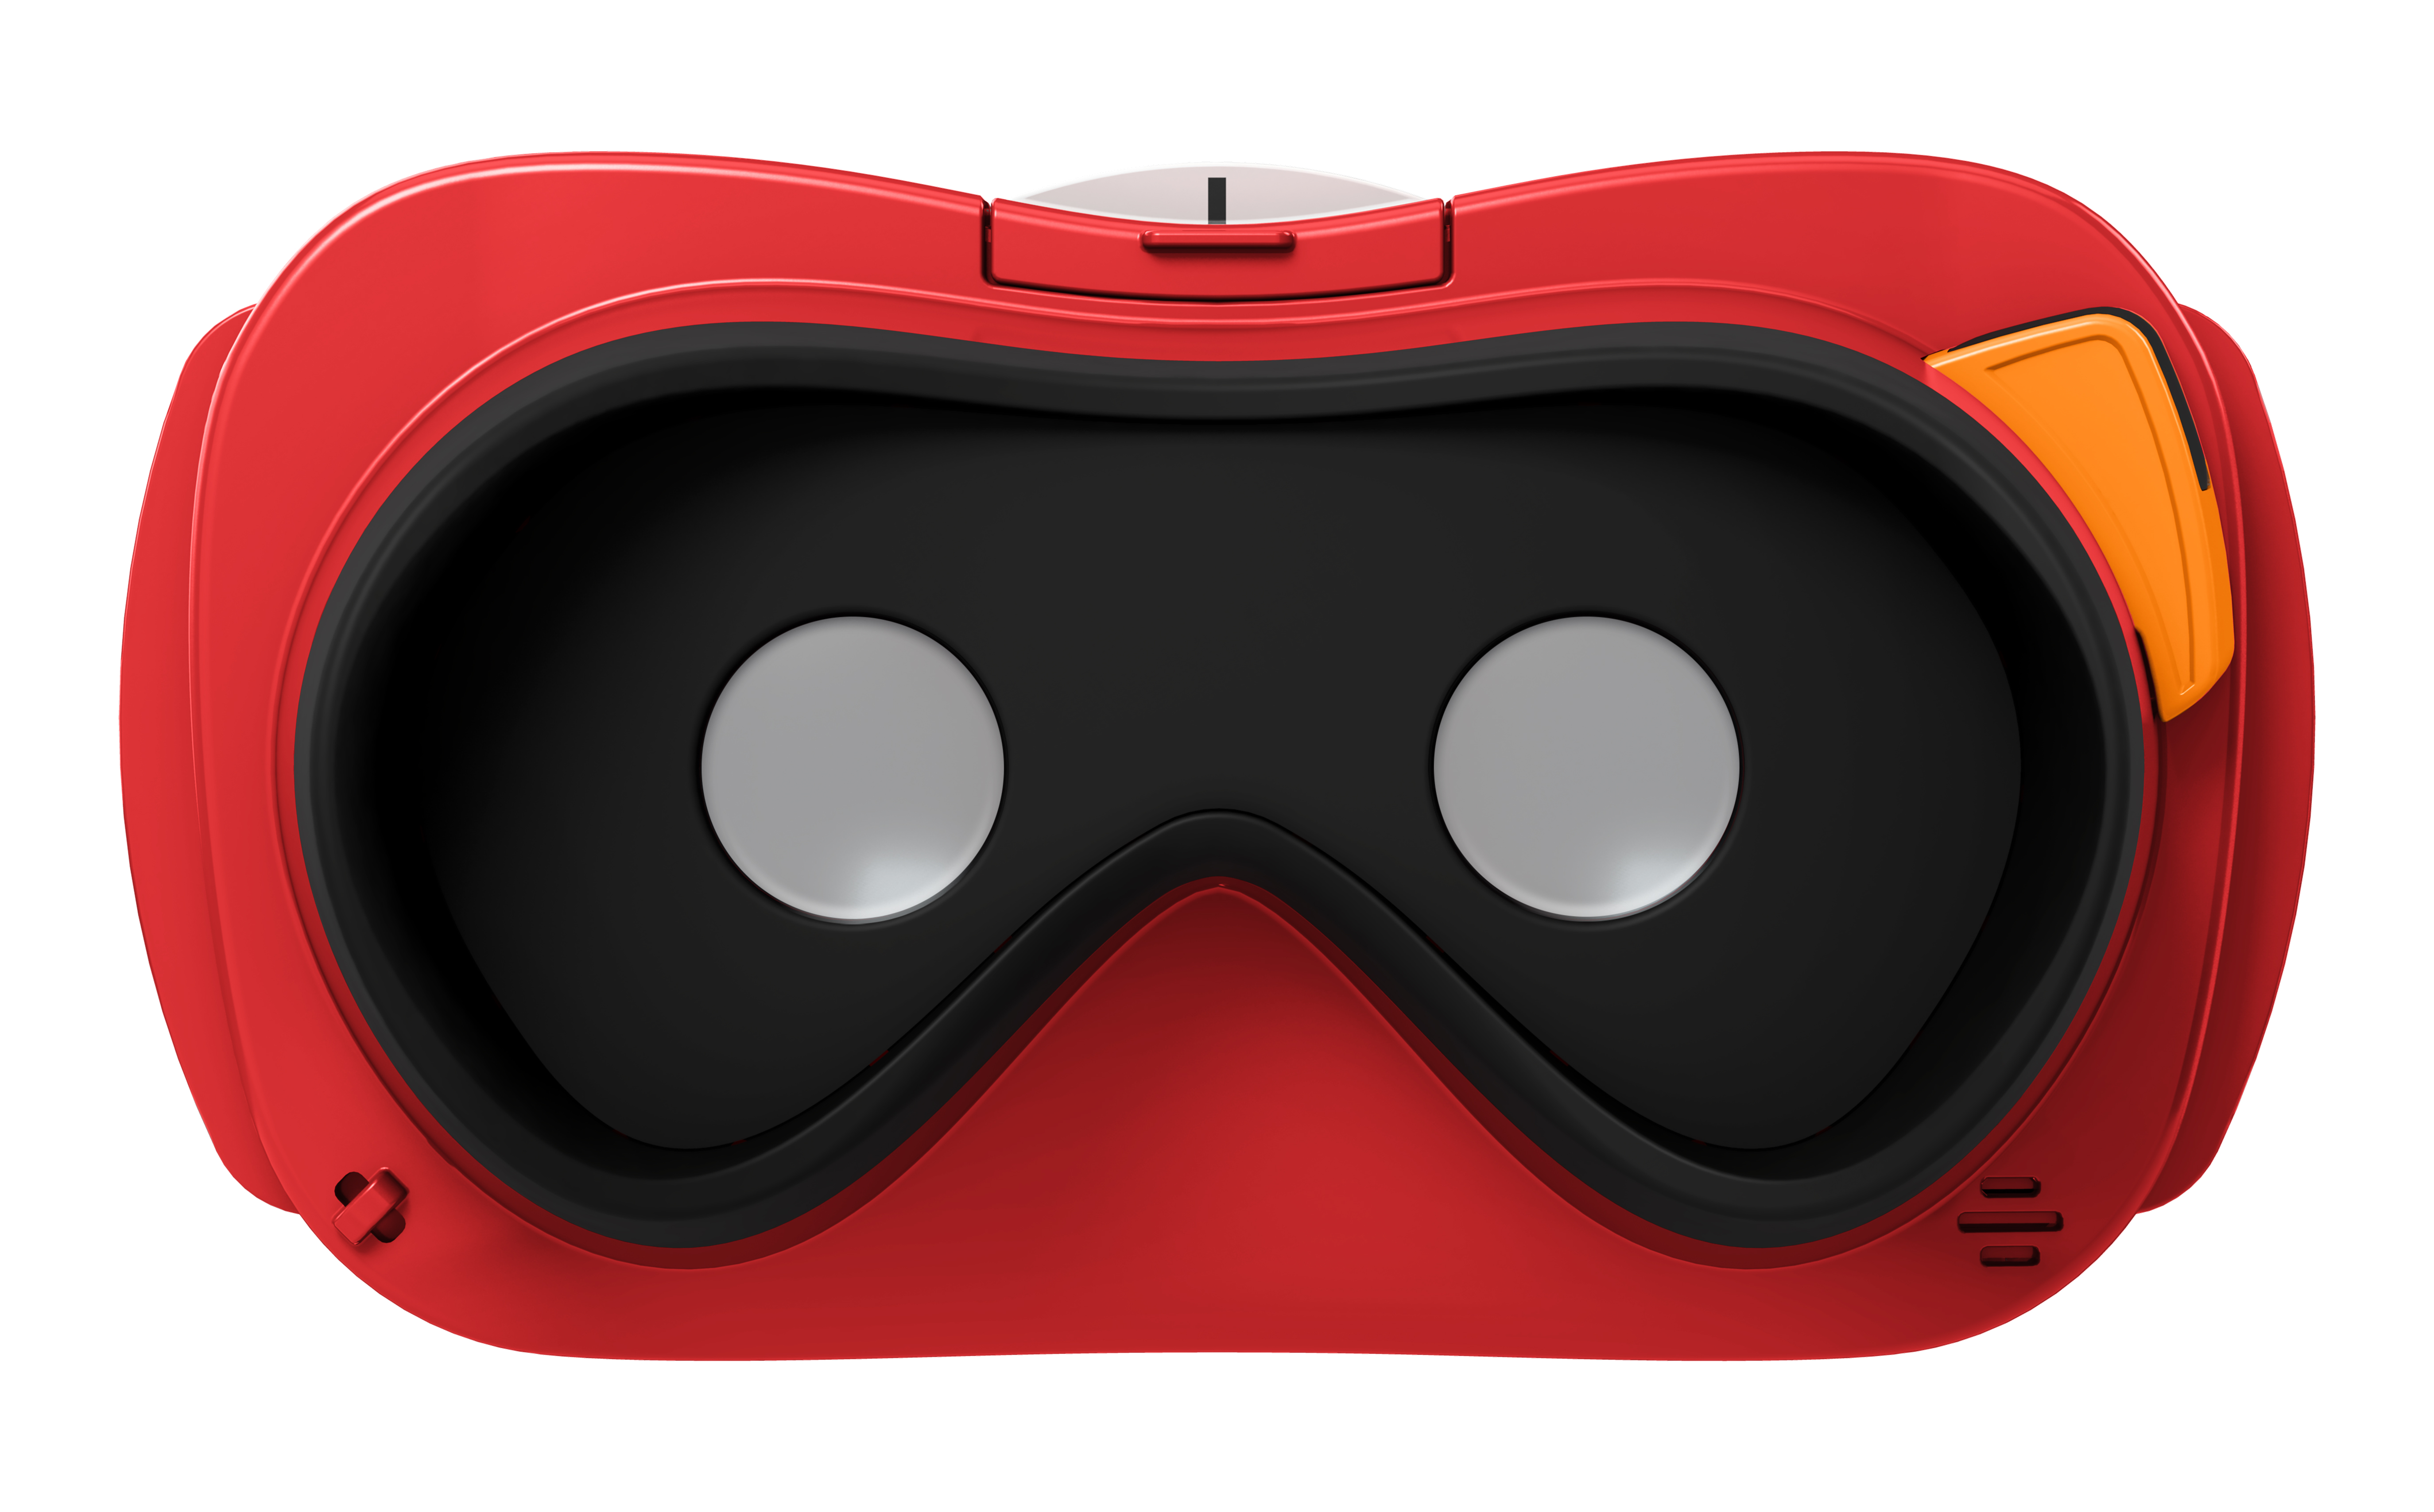 View-Master introduces kids to VR with space and wild animals